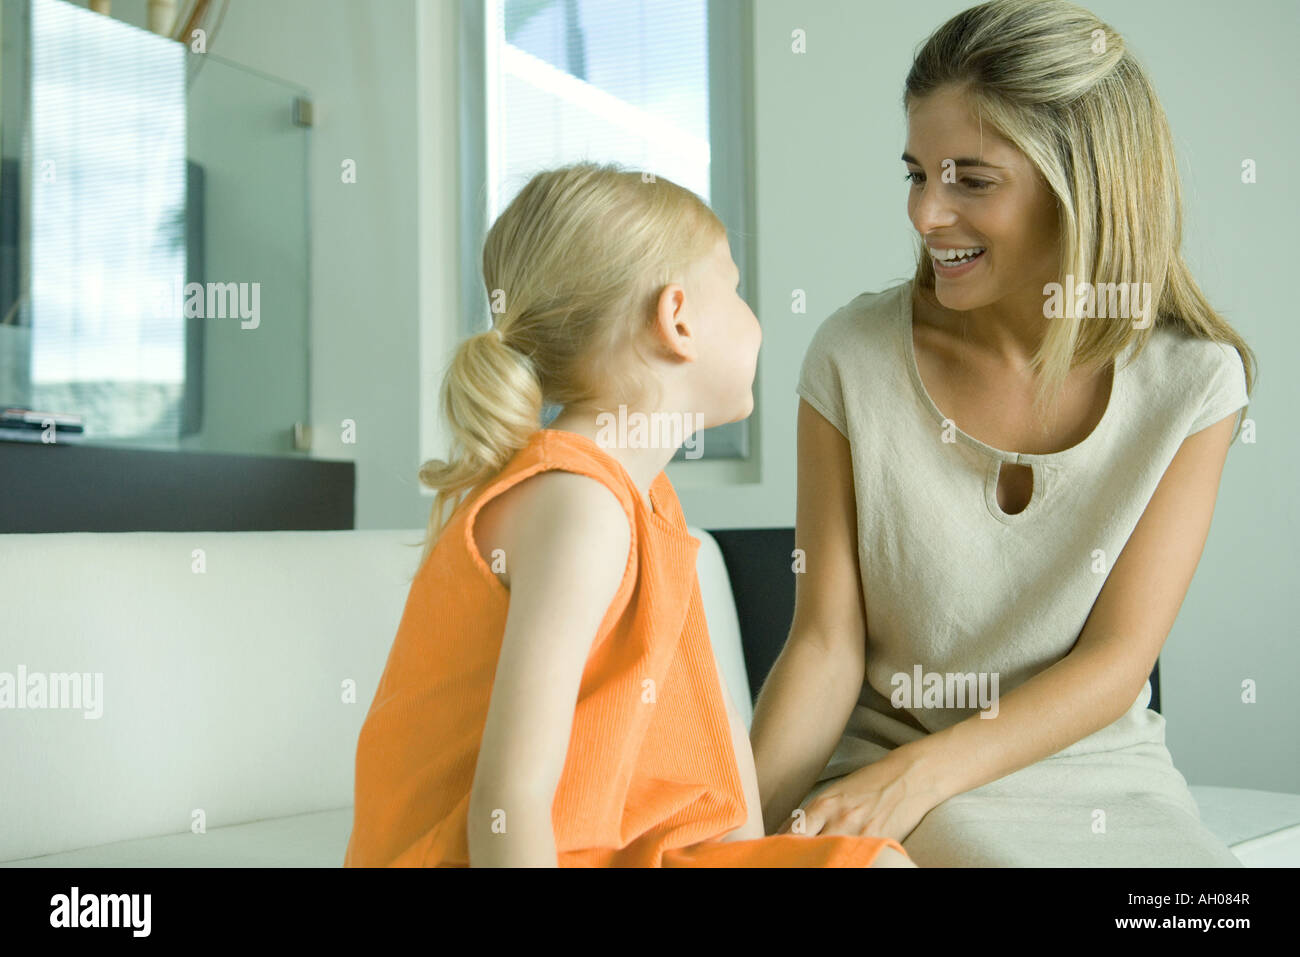 Mother talking to little girl - Stock Image